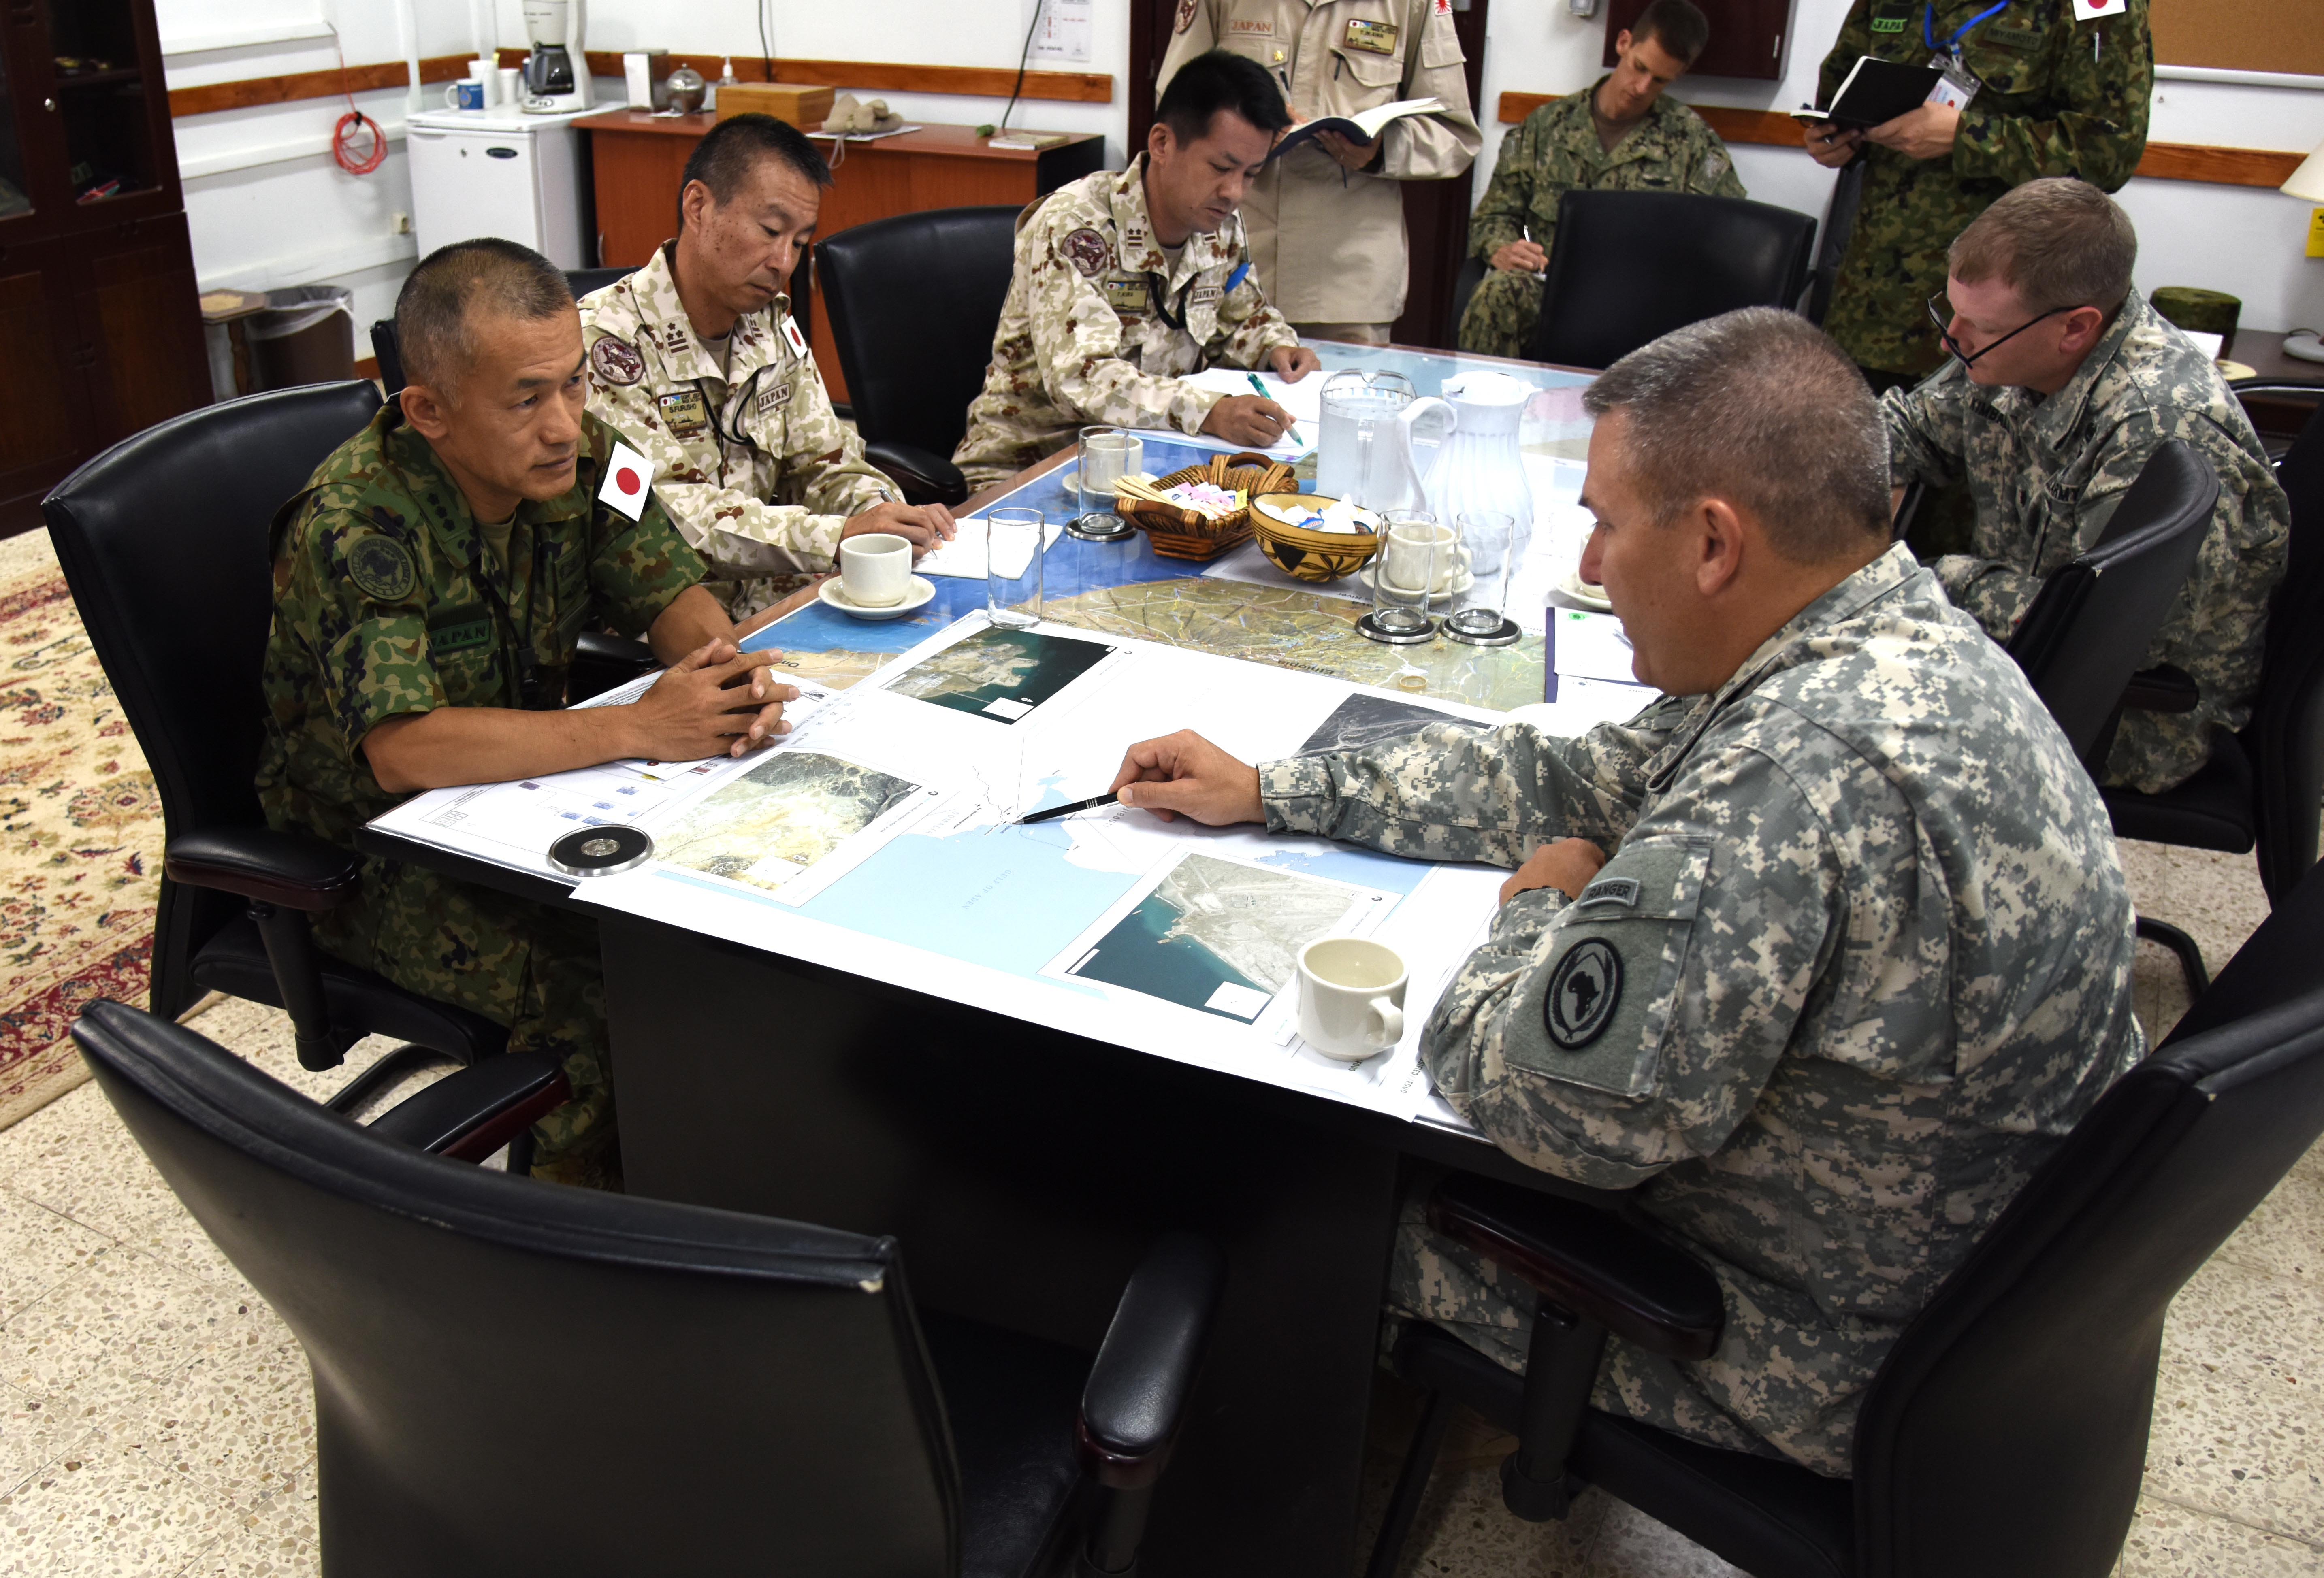 151009-N-DJ346-015 CAMP LEMONNIER, Djibouti (October 9, 2015) Major General Mark R. Stammer, Commanding General, Combined Joint Task Force – Horn of Africa, met with Lt. Gen. Hiromichi Kawamata, Commanding General, Japan Ground Self Defense Force, Central Readiness Force, to discuss future objectives and information sharing opportunities. General Stammer told General Kawamata that the Japanese Defense Forces are and remain valued friends and partners of CJTF-HOA. (U.S. Navy photo by Chief Mass Communication Specialist Donald W. Randall/Released)